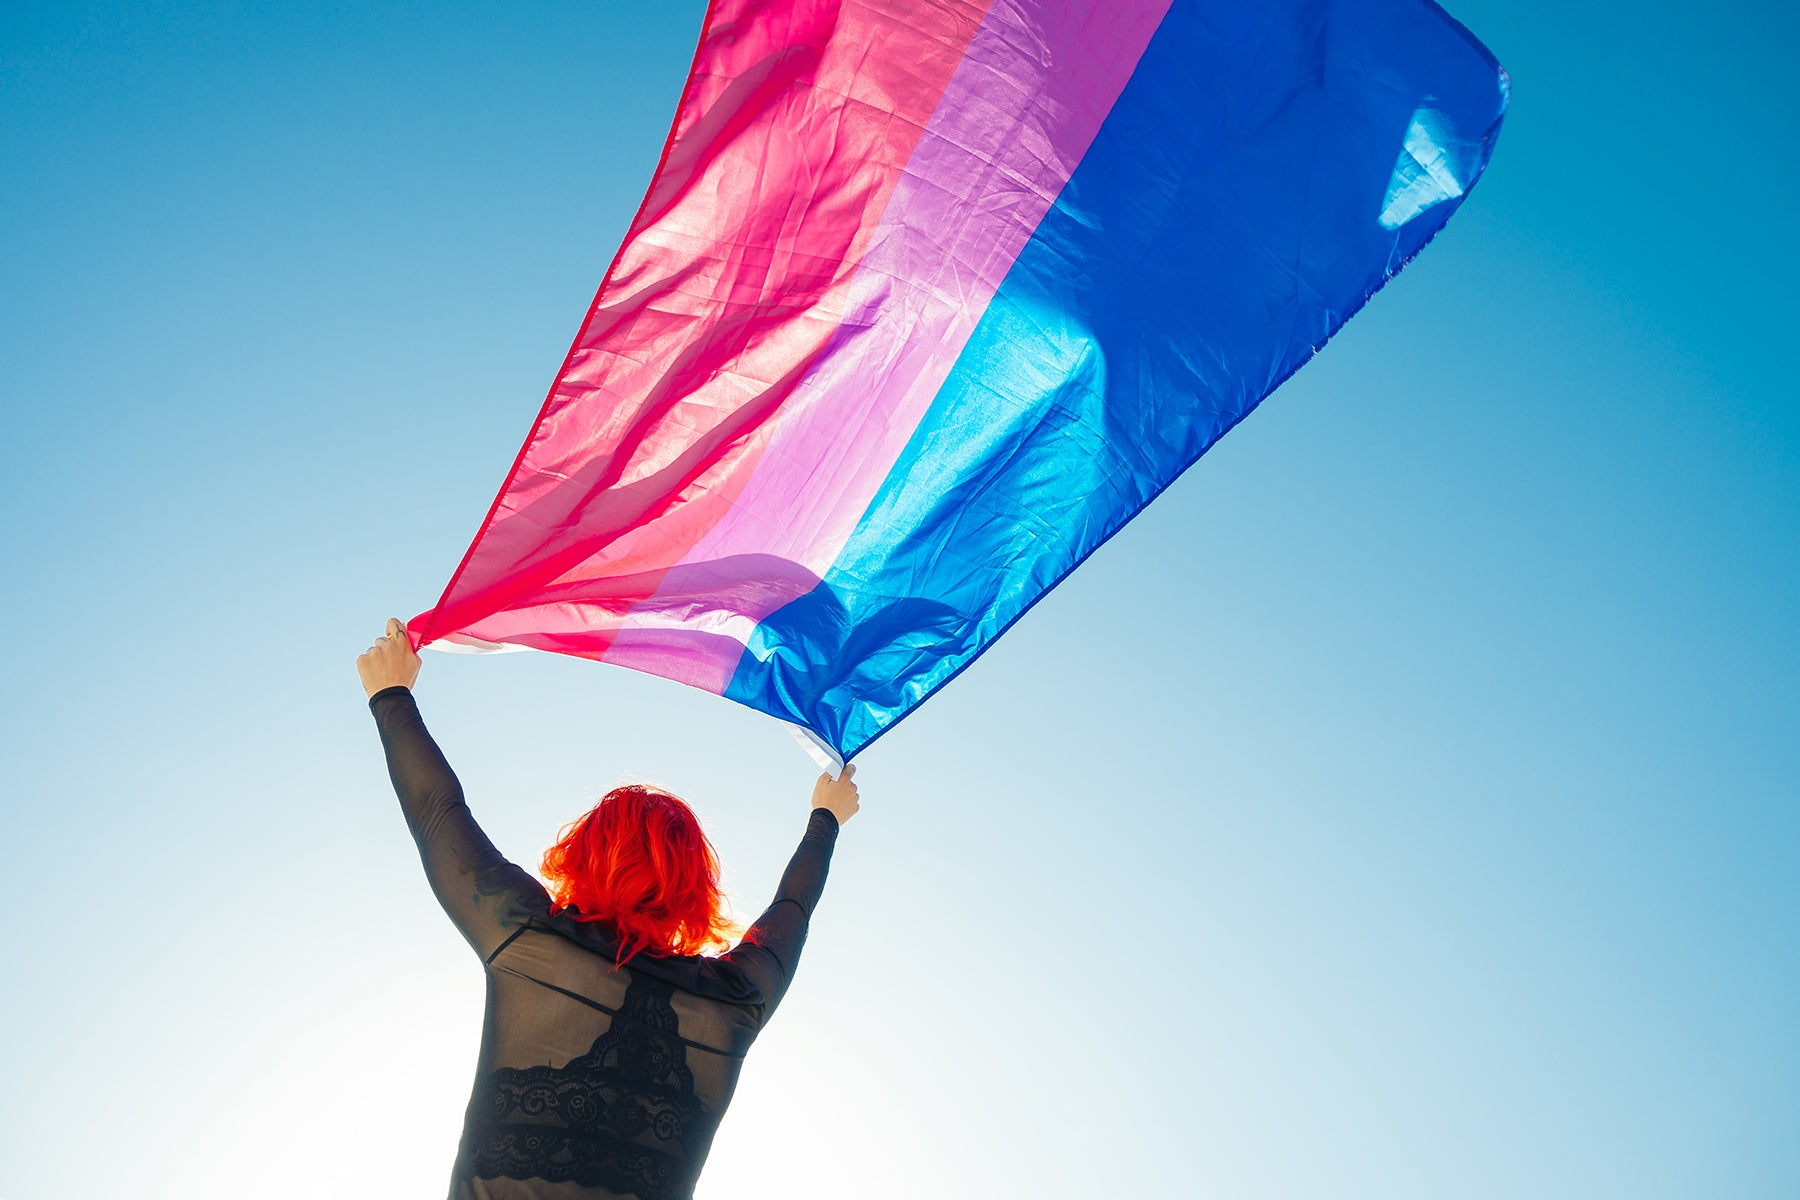 A white person with bright red hair facing away from the camera. They are holding a bisexual flag above their head.